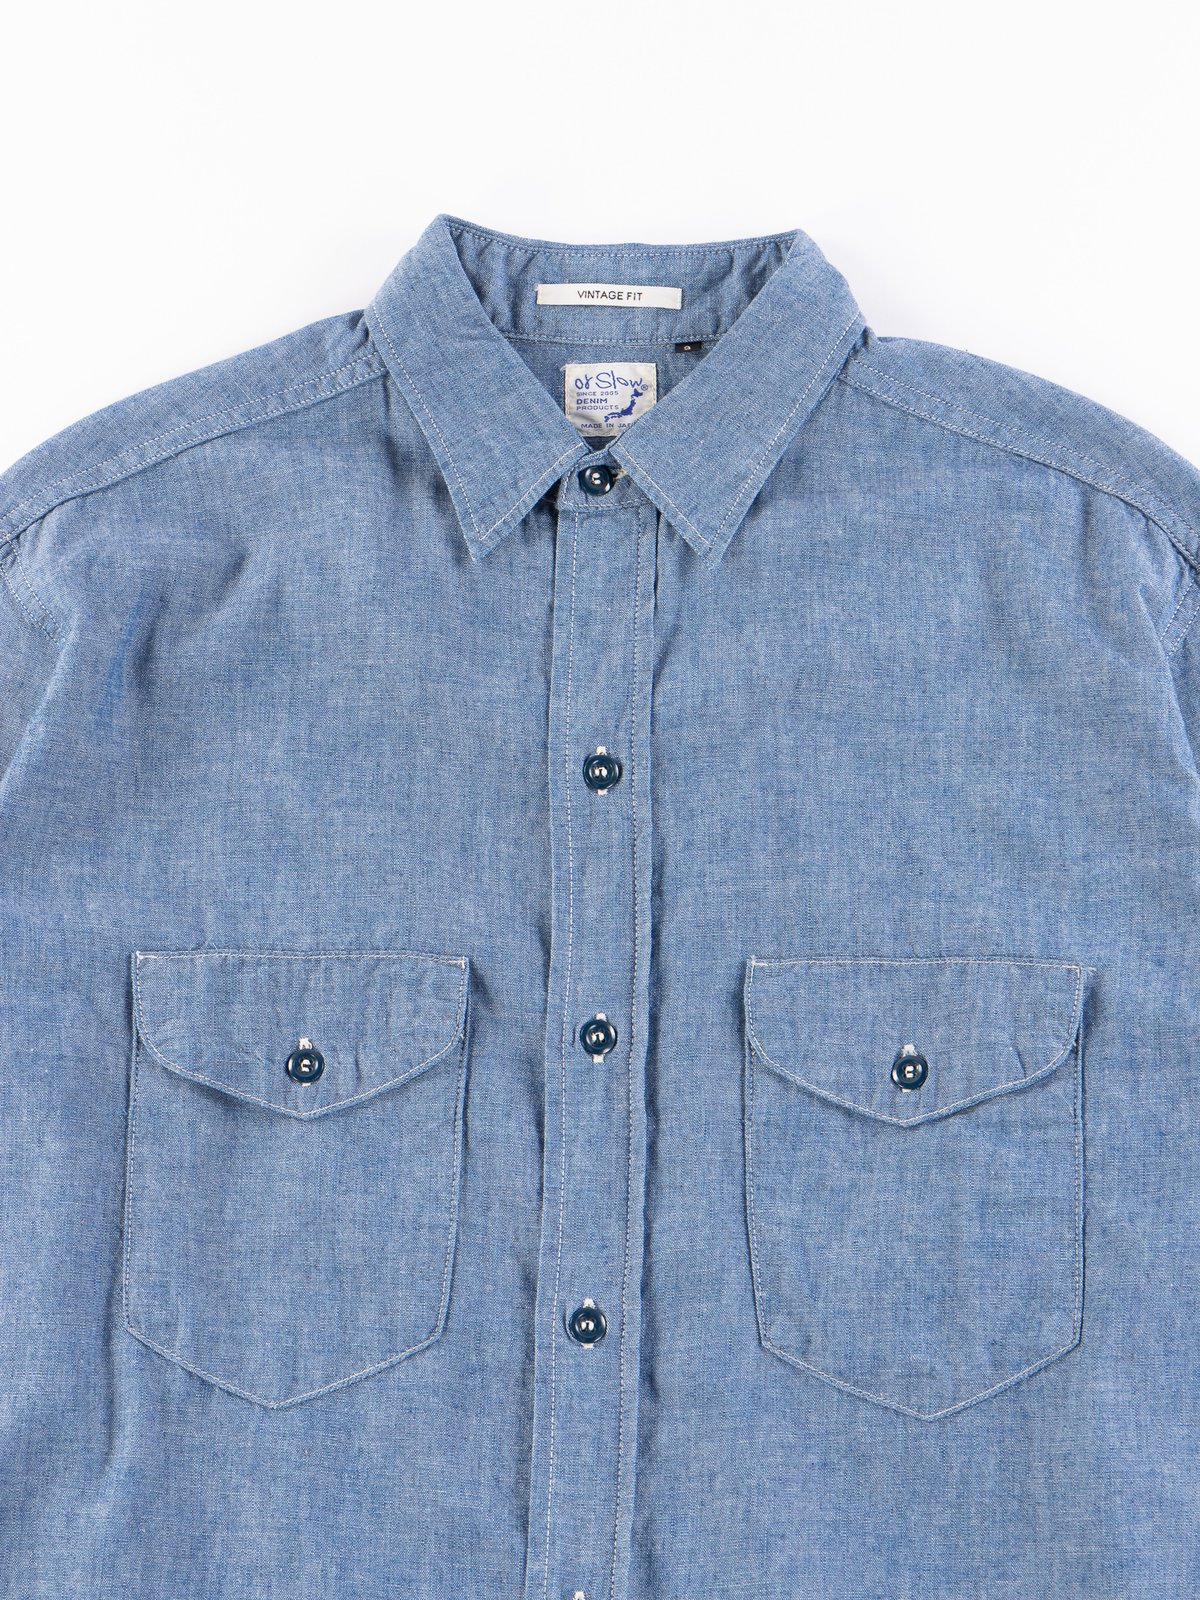 Blue Chambray Vintage Fit Work Shirt - Image 3